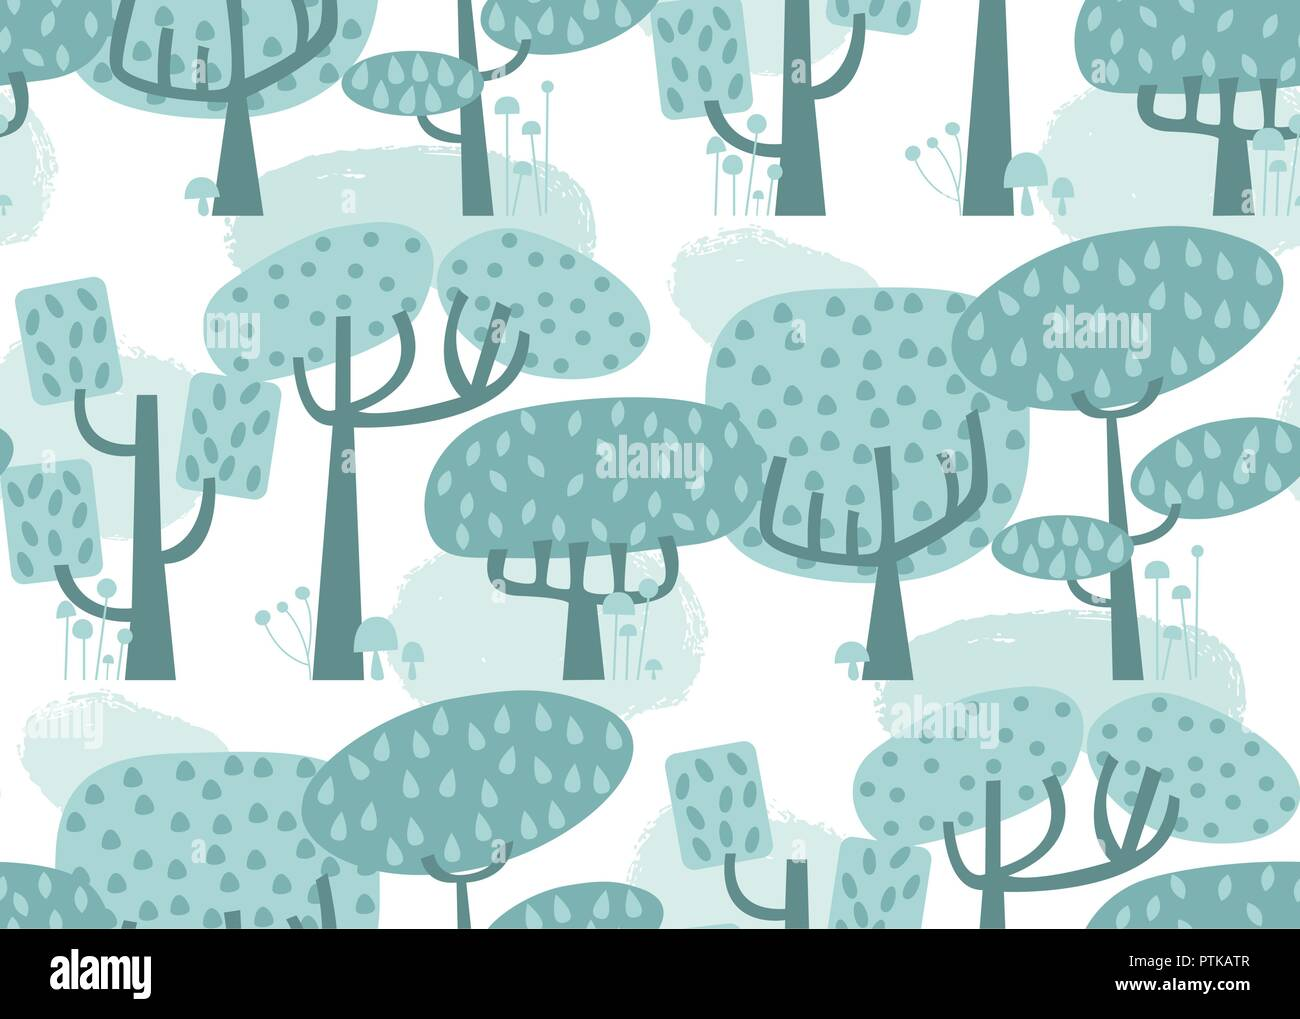 Vector forest seamless pattern background. Perfect for quilting, scrapbooking, crafting and children projects - Stock Vector